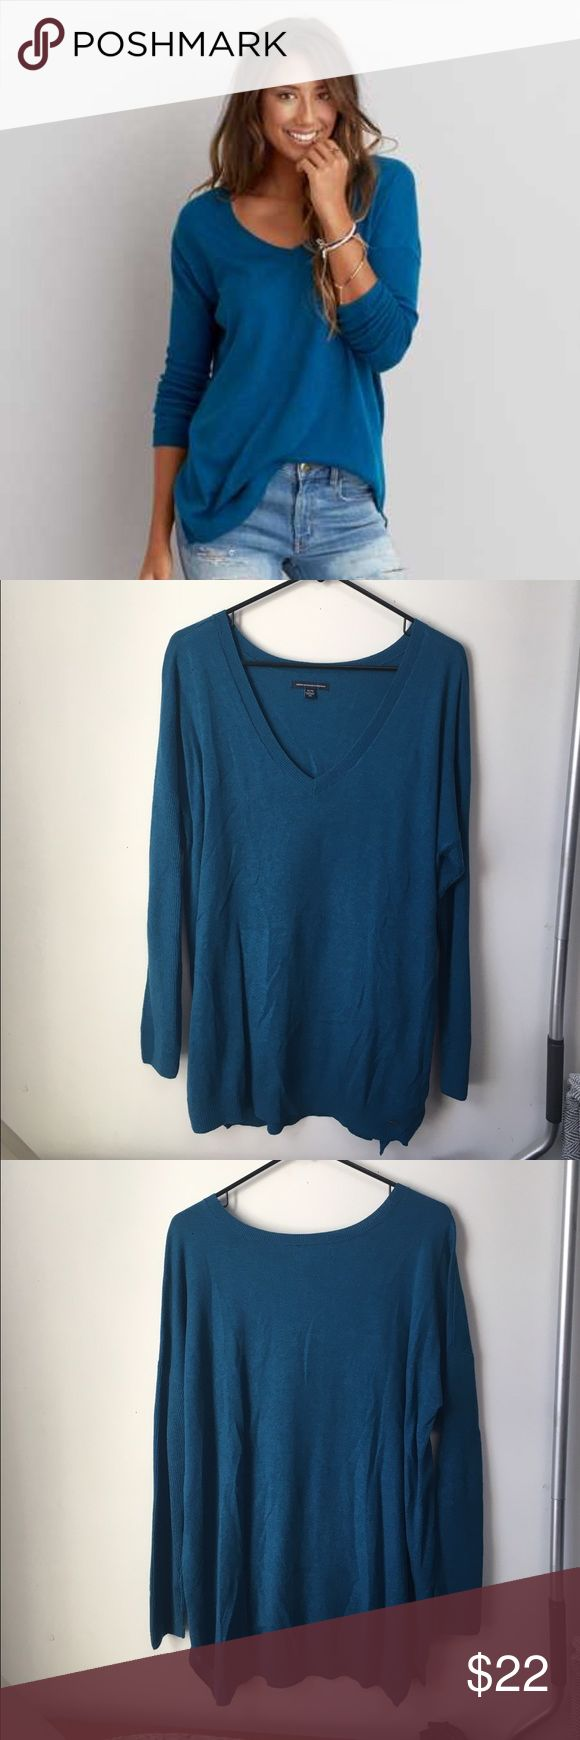 American Eagle Jegging Sweater Teal American eagle jegging sweater worn about 3 times. Size xl. Also have this in maroon just not listed yet American Eagle Outfitters Sweaters V-Necks